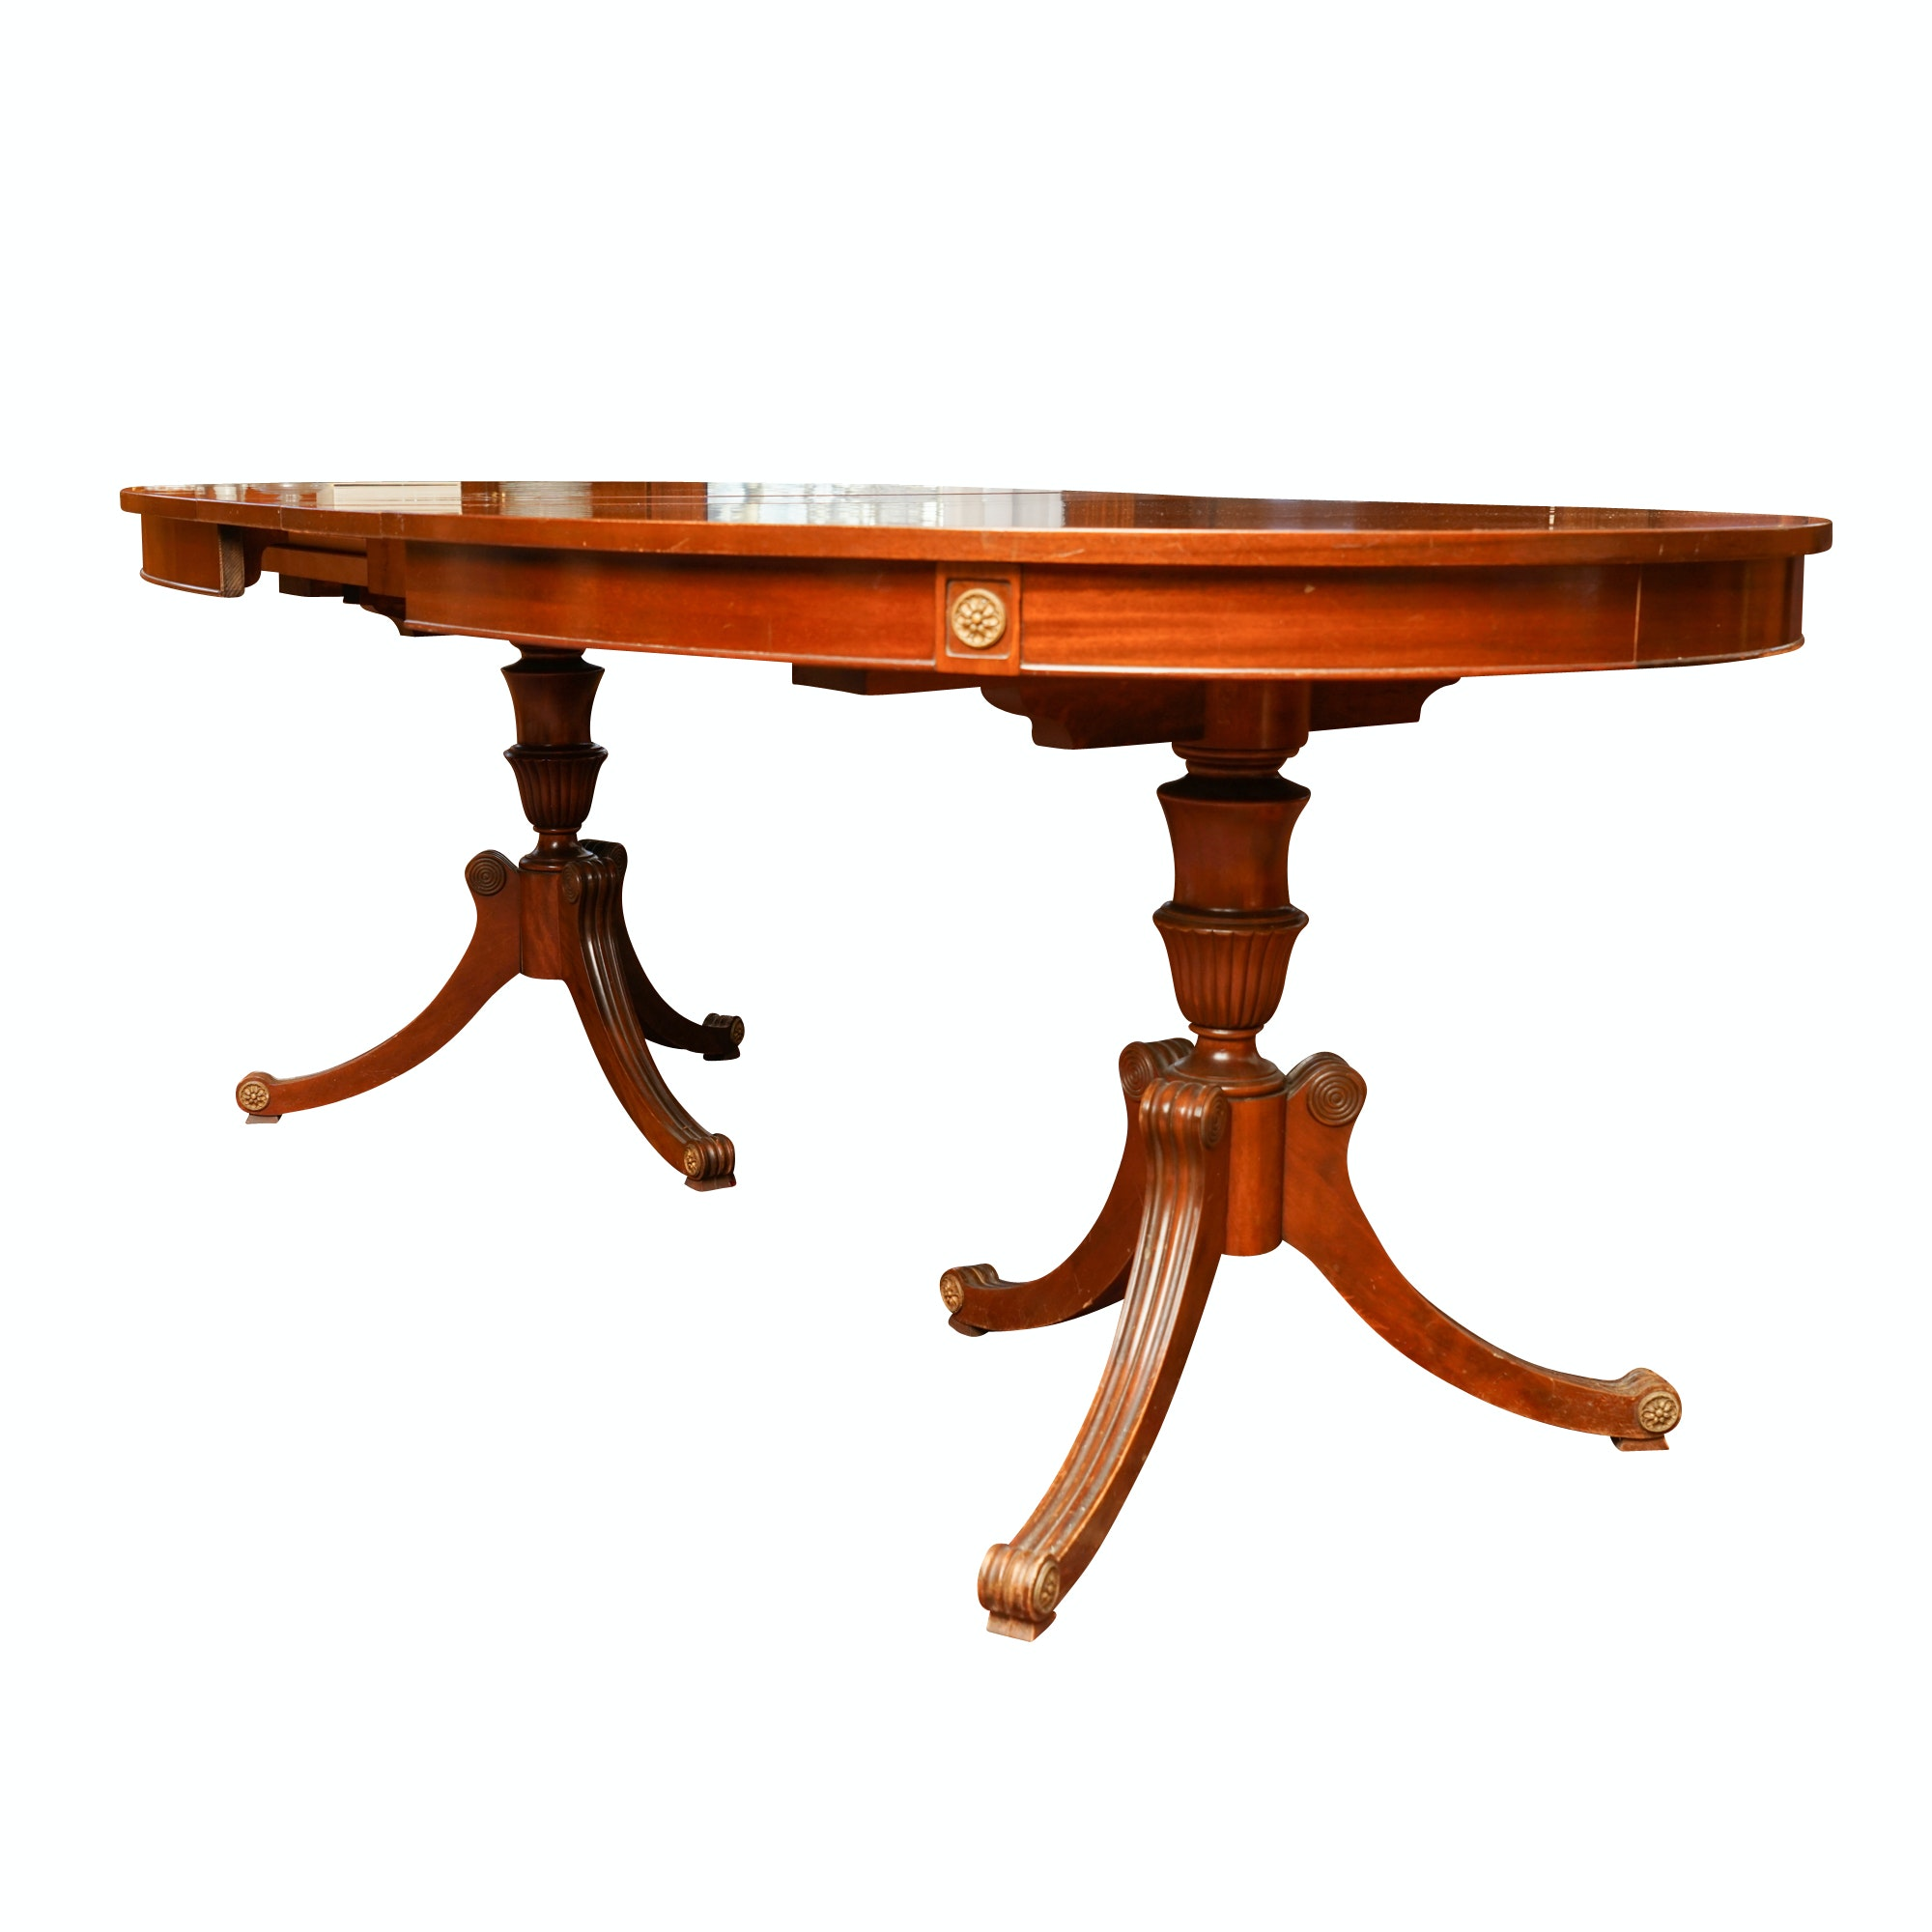 Vintage Regency Style Double Pedestal Dining Table by R-Way Furniture